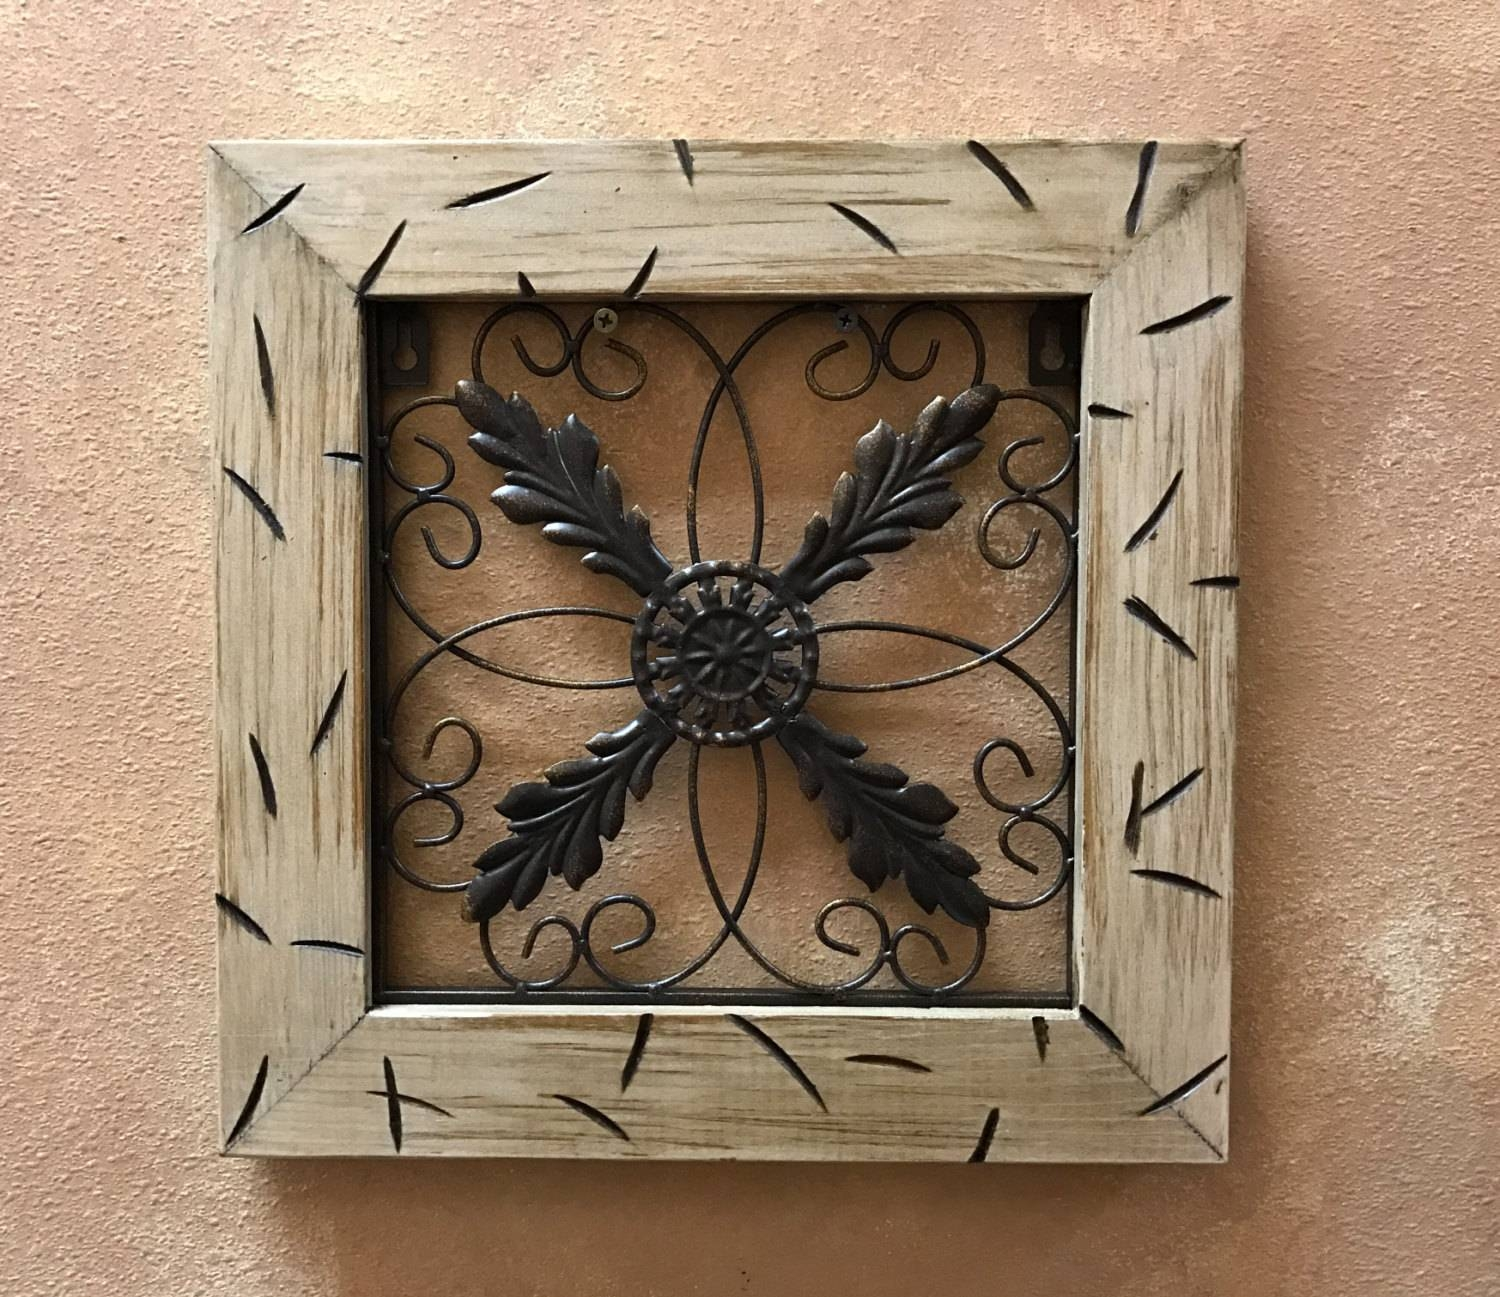 Metal Wall Art Wood Cream Distressed Framed Metal Fleur De Lis For Most Up To Date Framed Metal Wall Art (View 3 of 20)